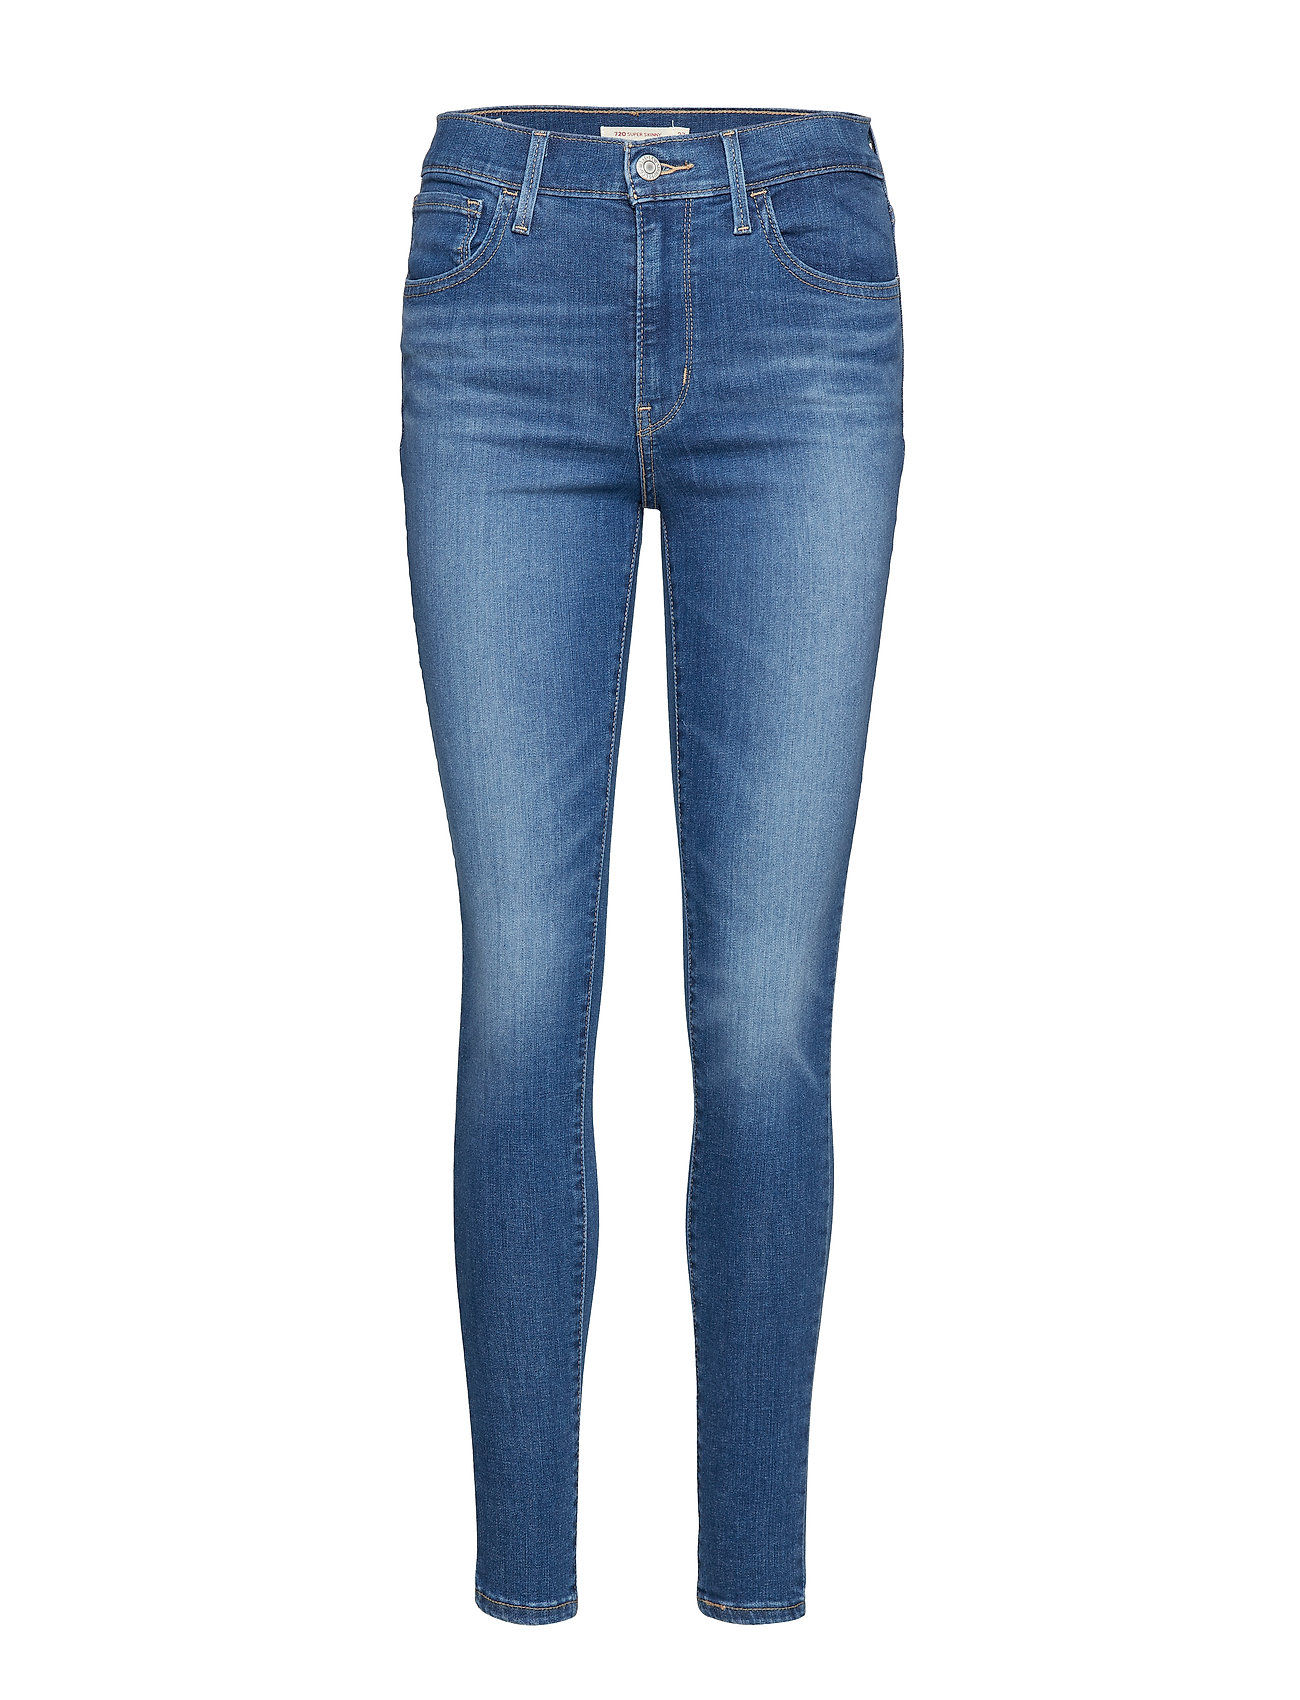 LEVI´S Women 720 HIRISE SUPER SKINNY LOVE R - MED INDIGO - WORN IN